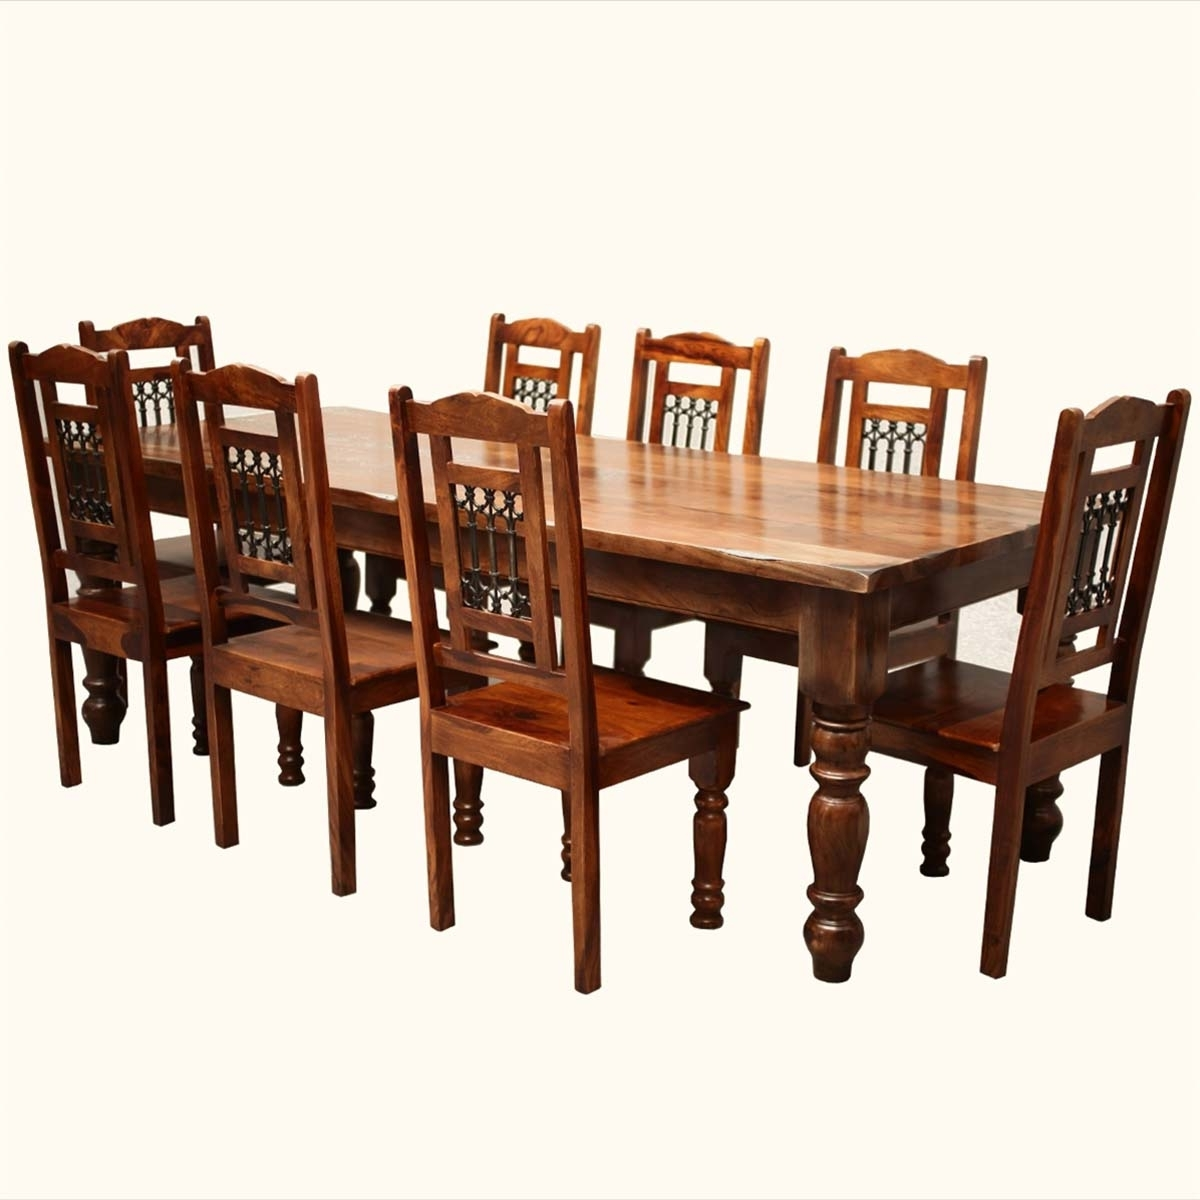 Dining Tables Set For 8 With Regard To Favorite 8 Chair Dining Table Sets Gallery Dining, Dining Table Set 8 Chairs (View 14 of 25)